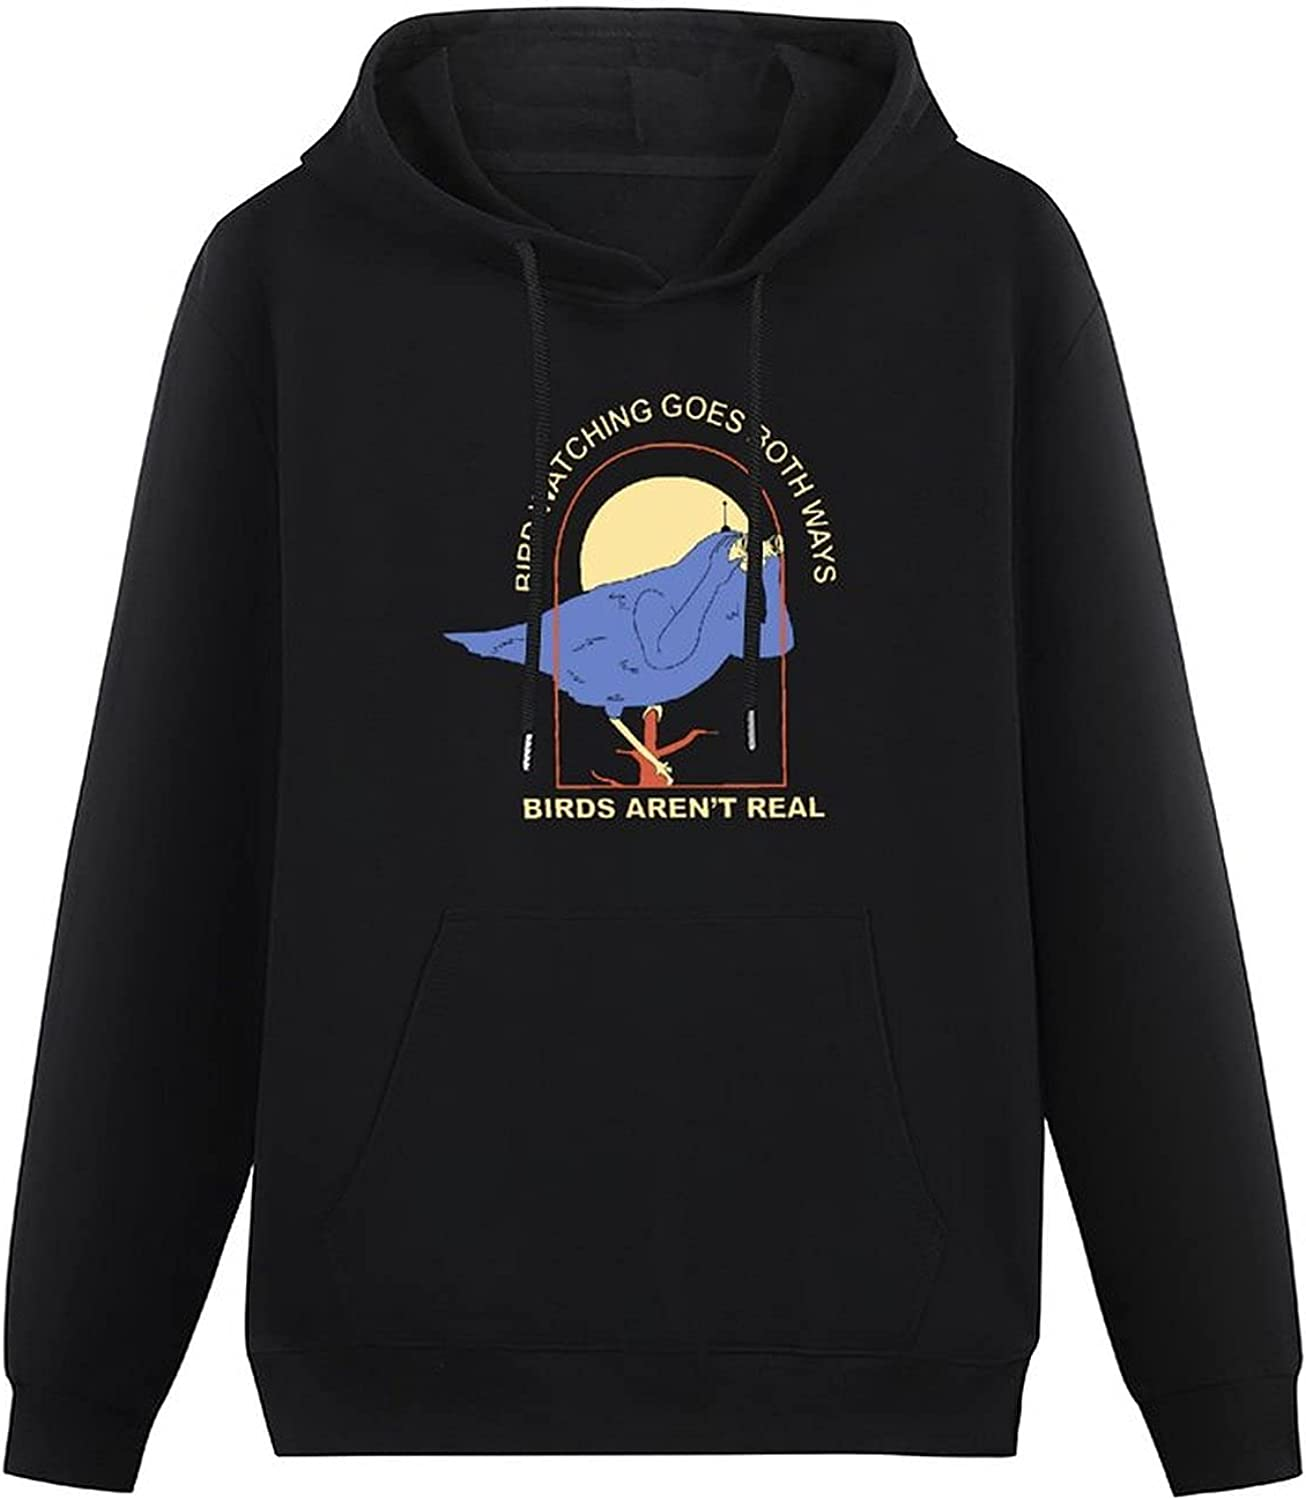 ENXOWM Bird aren't Real-15 Hooded Sweater with Pockets Male Casual Fashion Soft Cotton